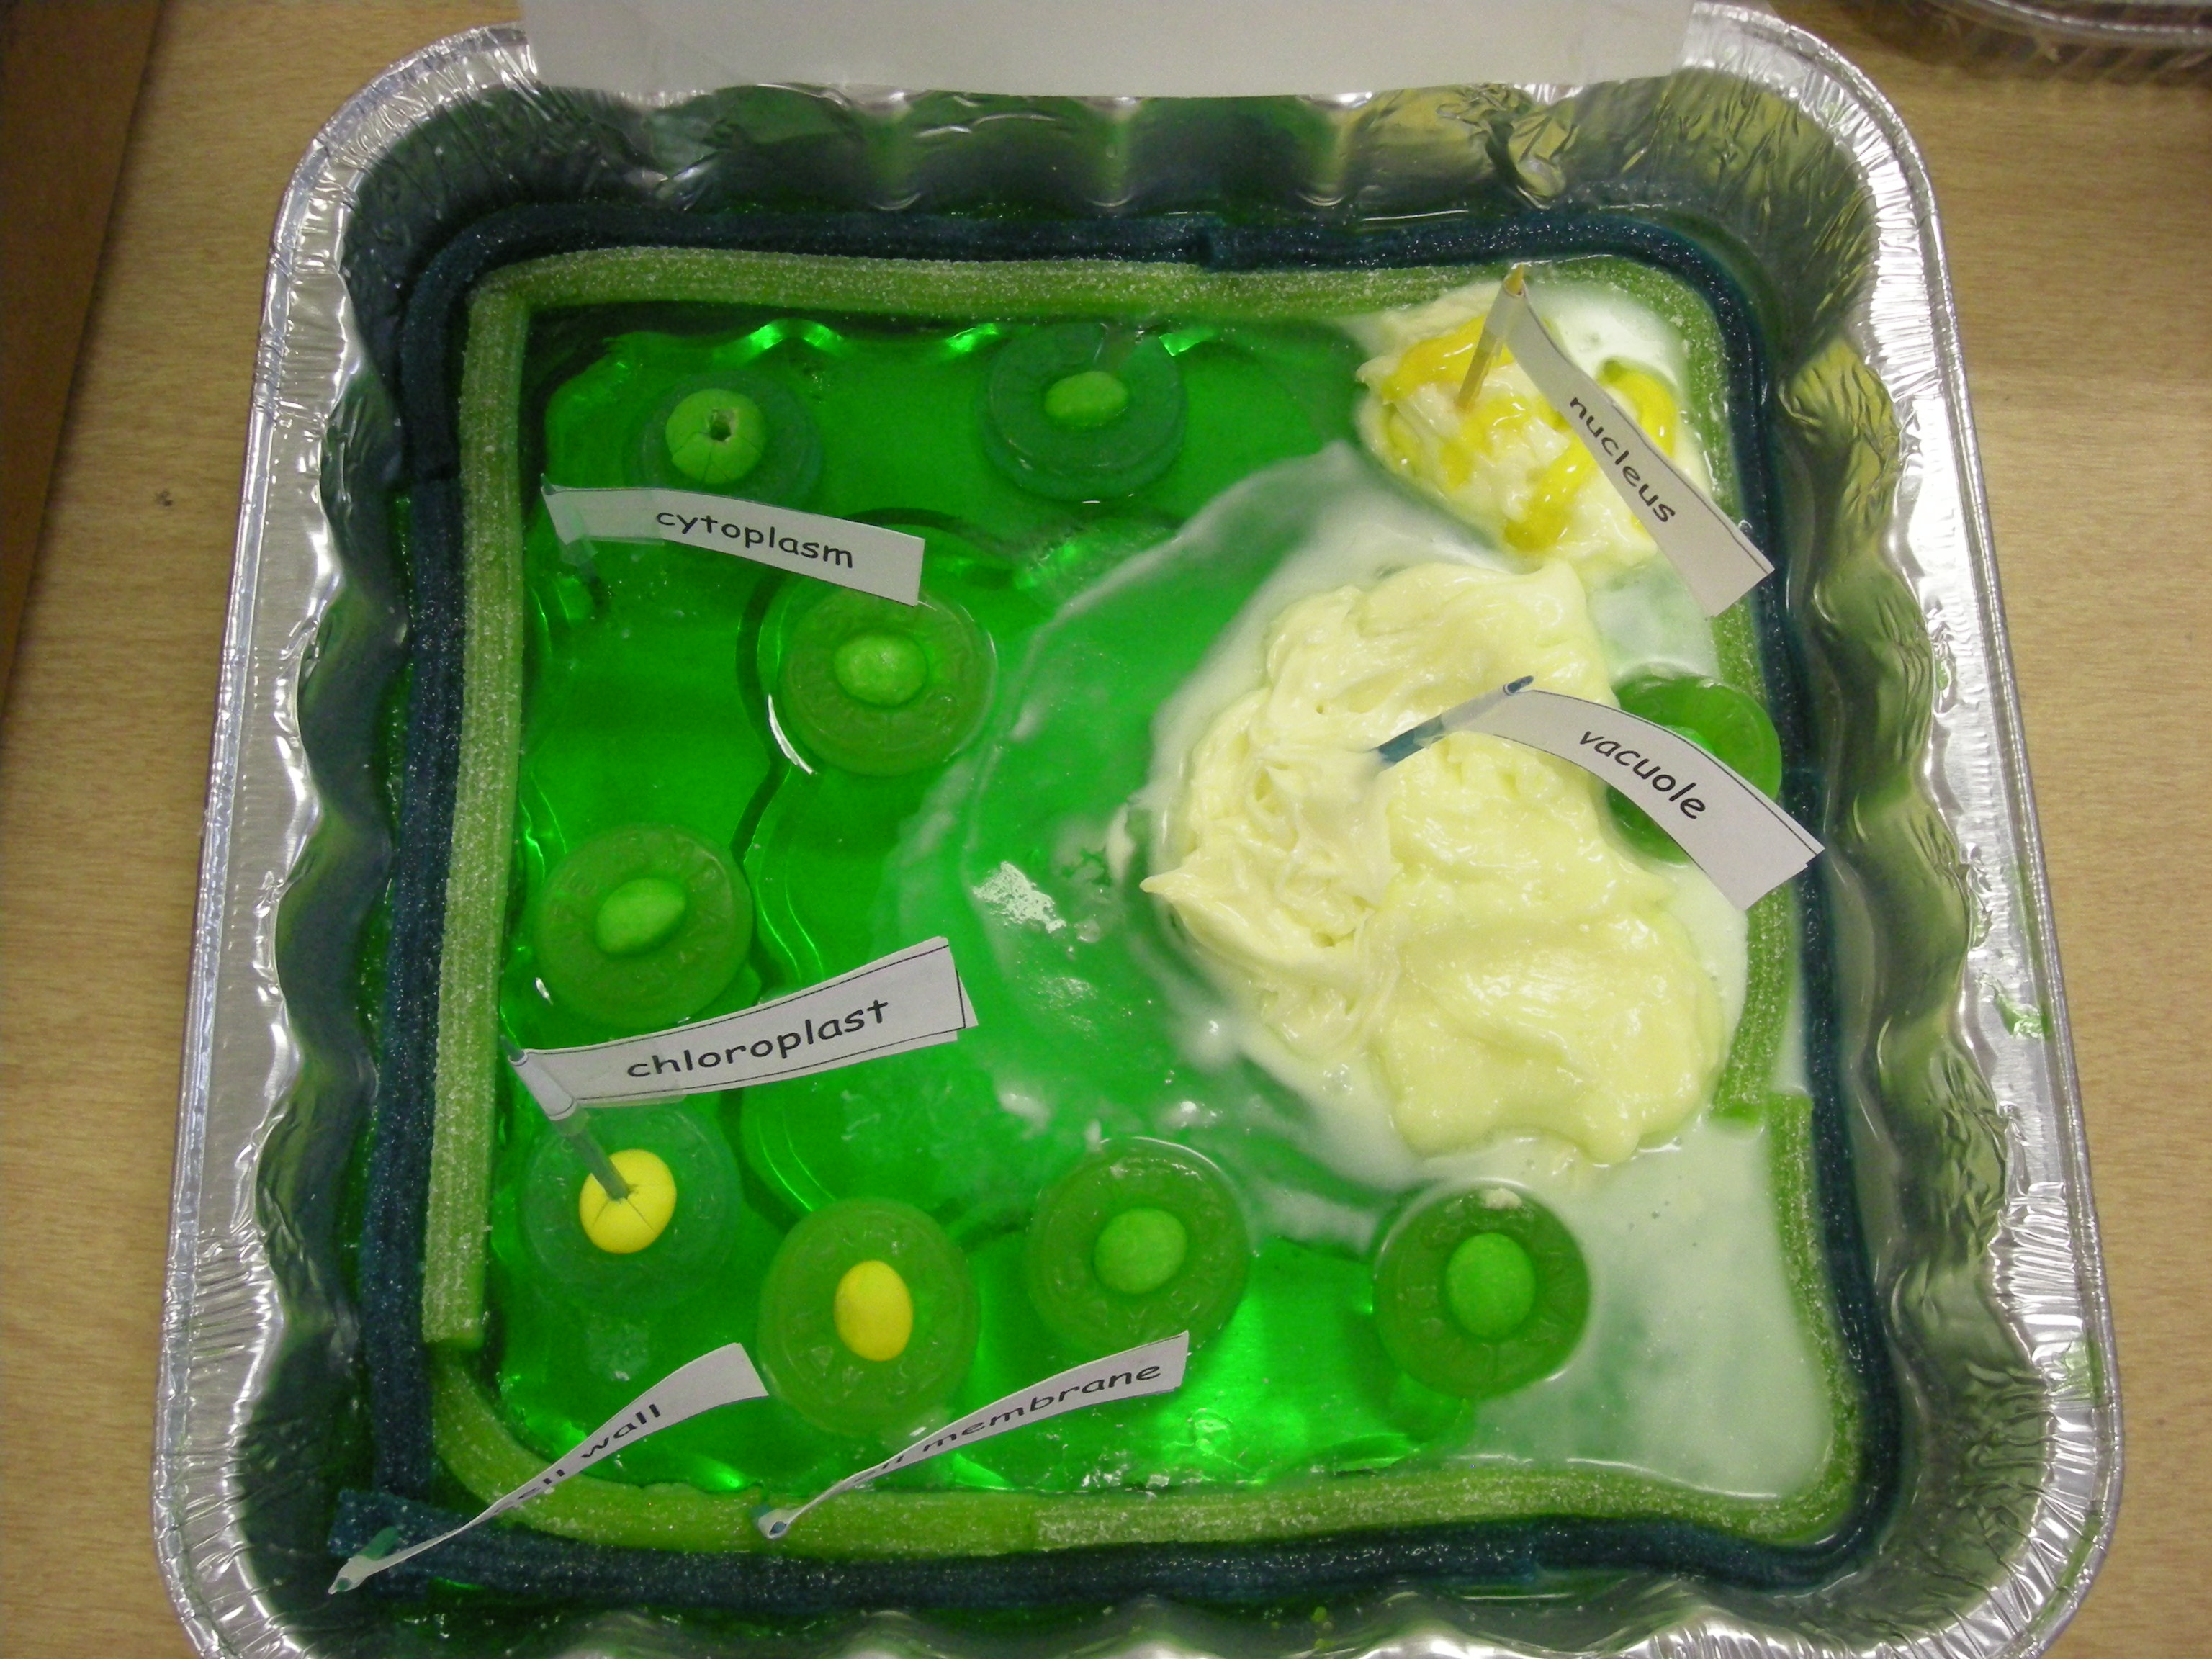 Sample of Plant Cell Projects http://science5.edublogs.org/2008/10/10/animal-plant-cells-project/